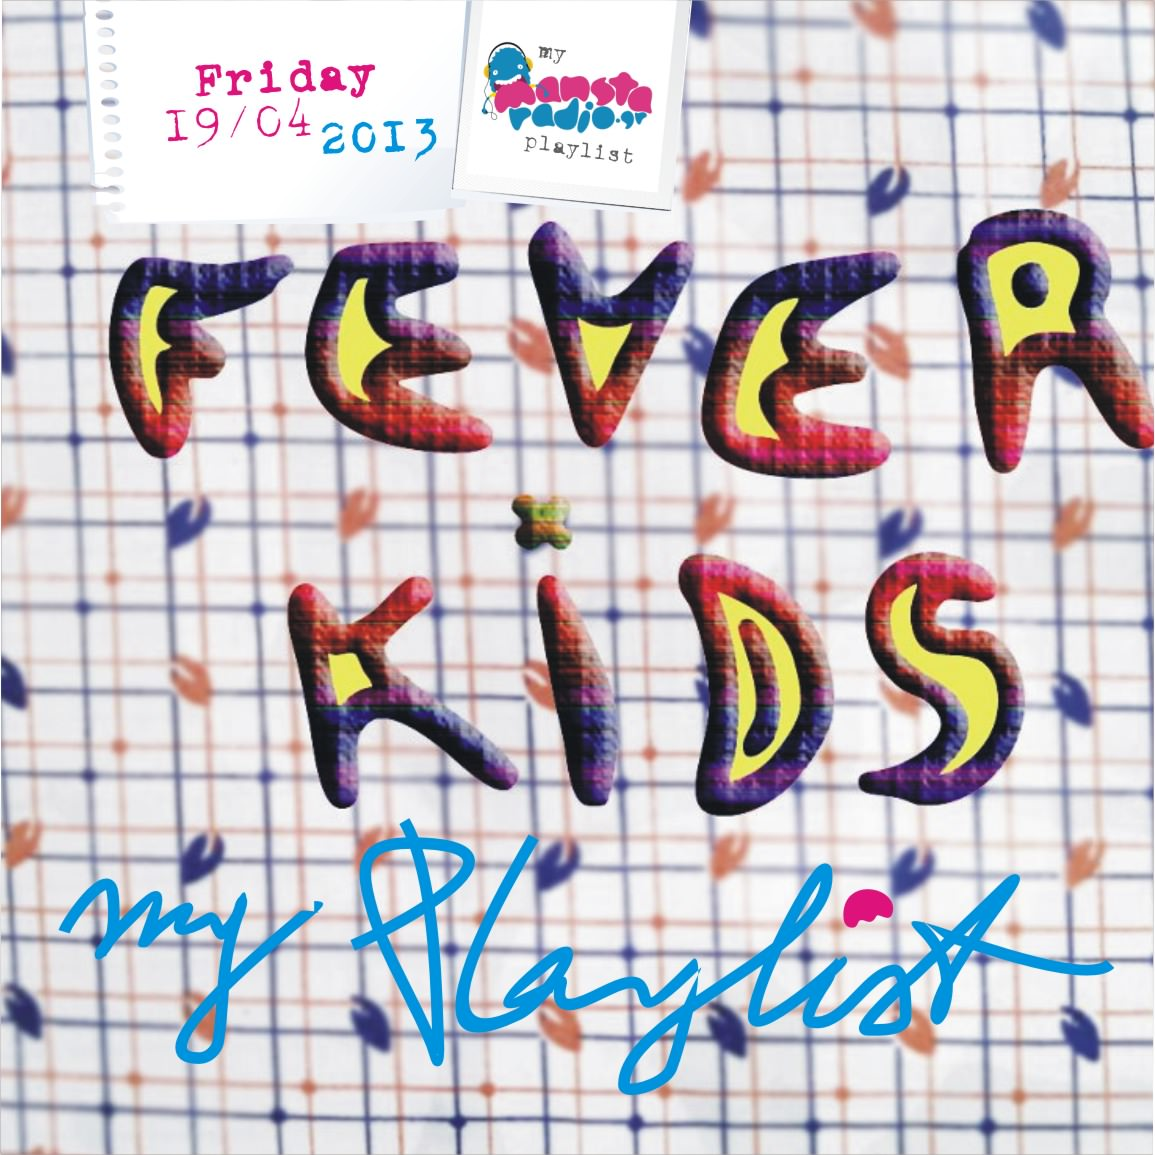 Fever Kids 'My Playlist' for Mansta Radio